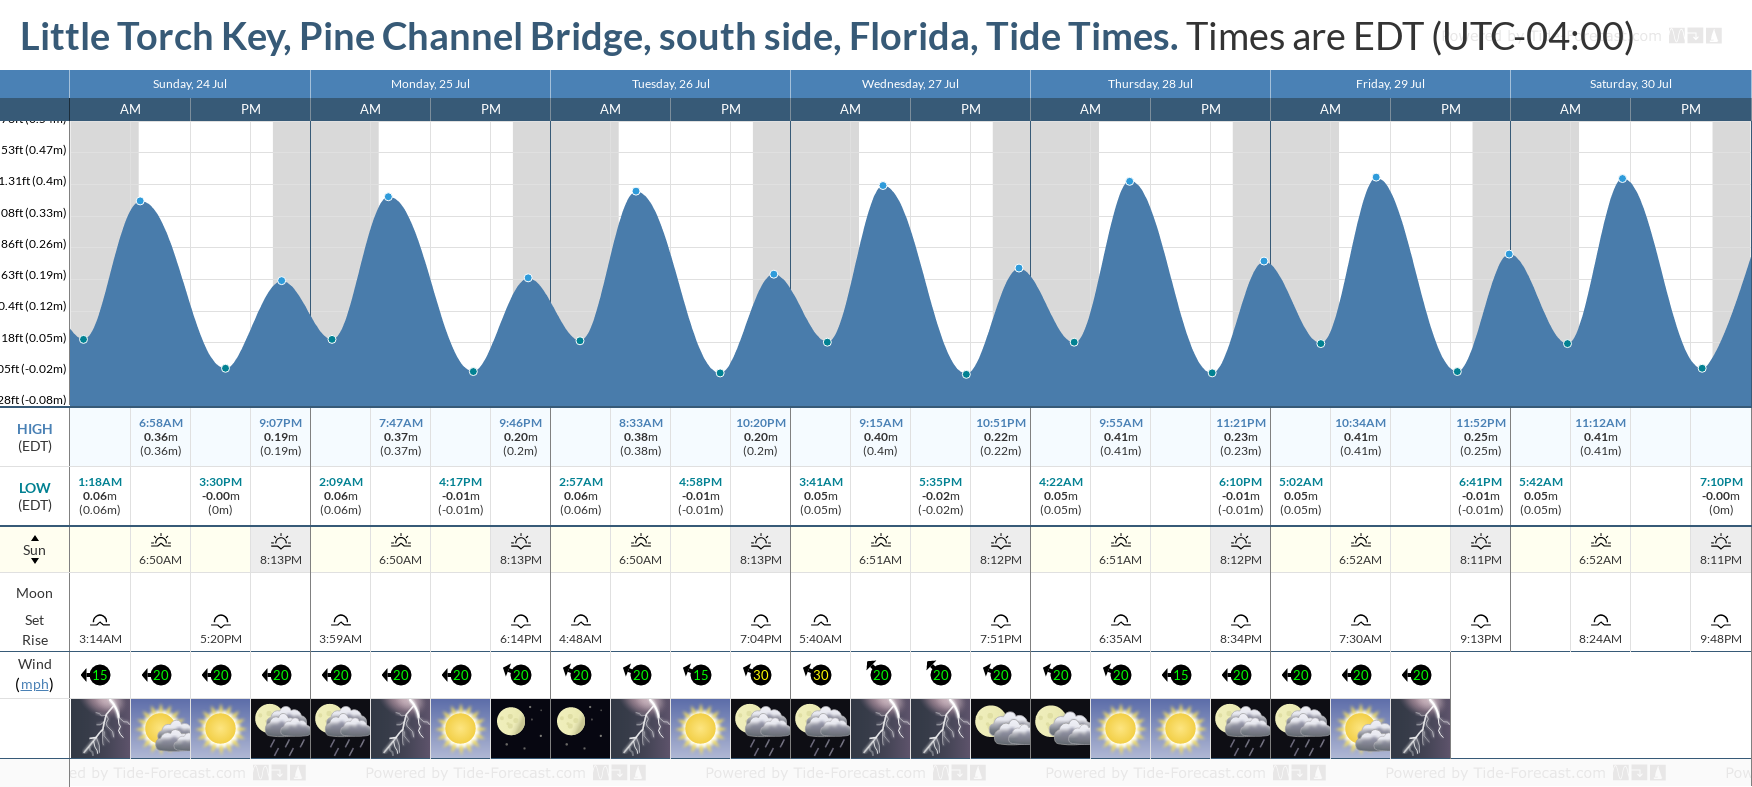 Little Torch Key, Pine Channel Bridge, south side, Florida Tide Chart including high and low tide tide times for the next 7 days